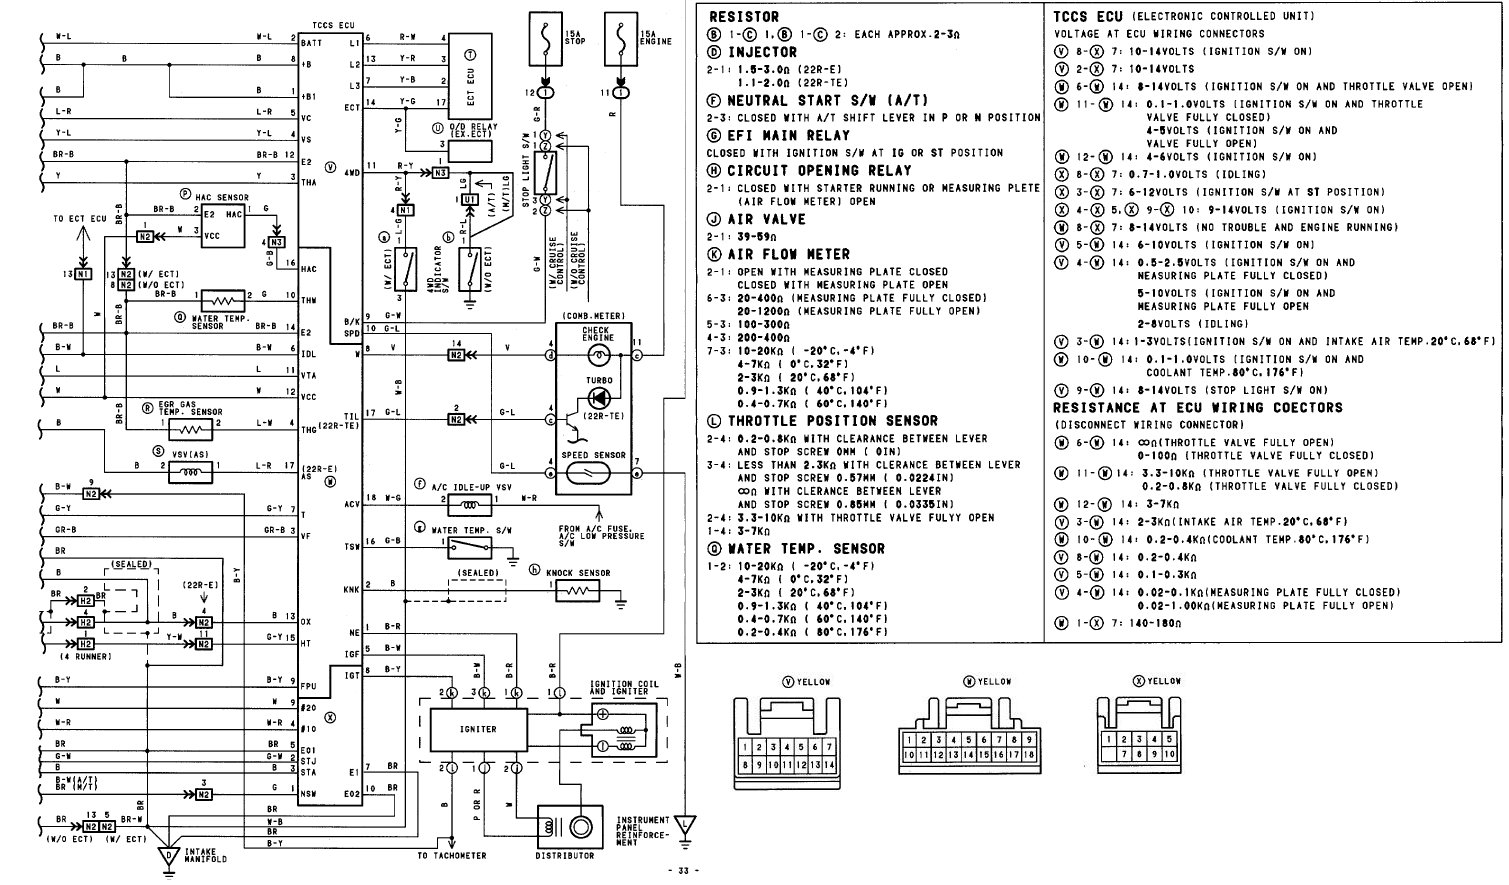 toyota 4runner wiring diagram jHkLHrj 1986 toyota 4runner wiring harness wiring diagrams 1986 toyota pickup alternator wire harness at bakdesigns.co